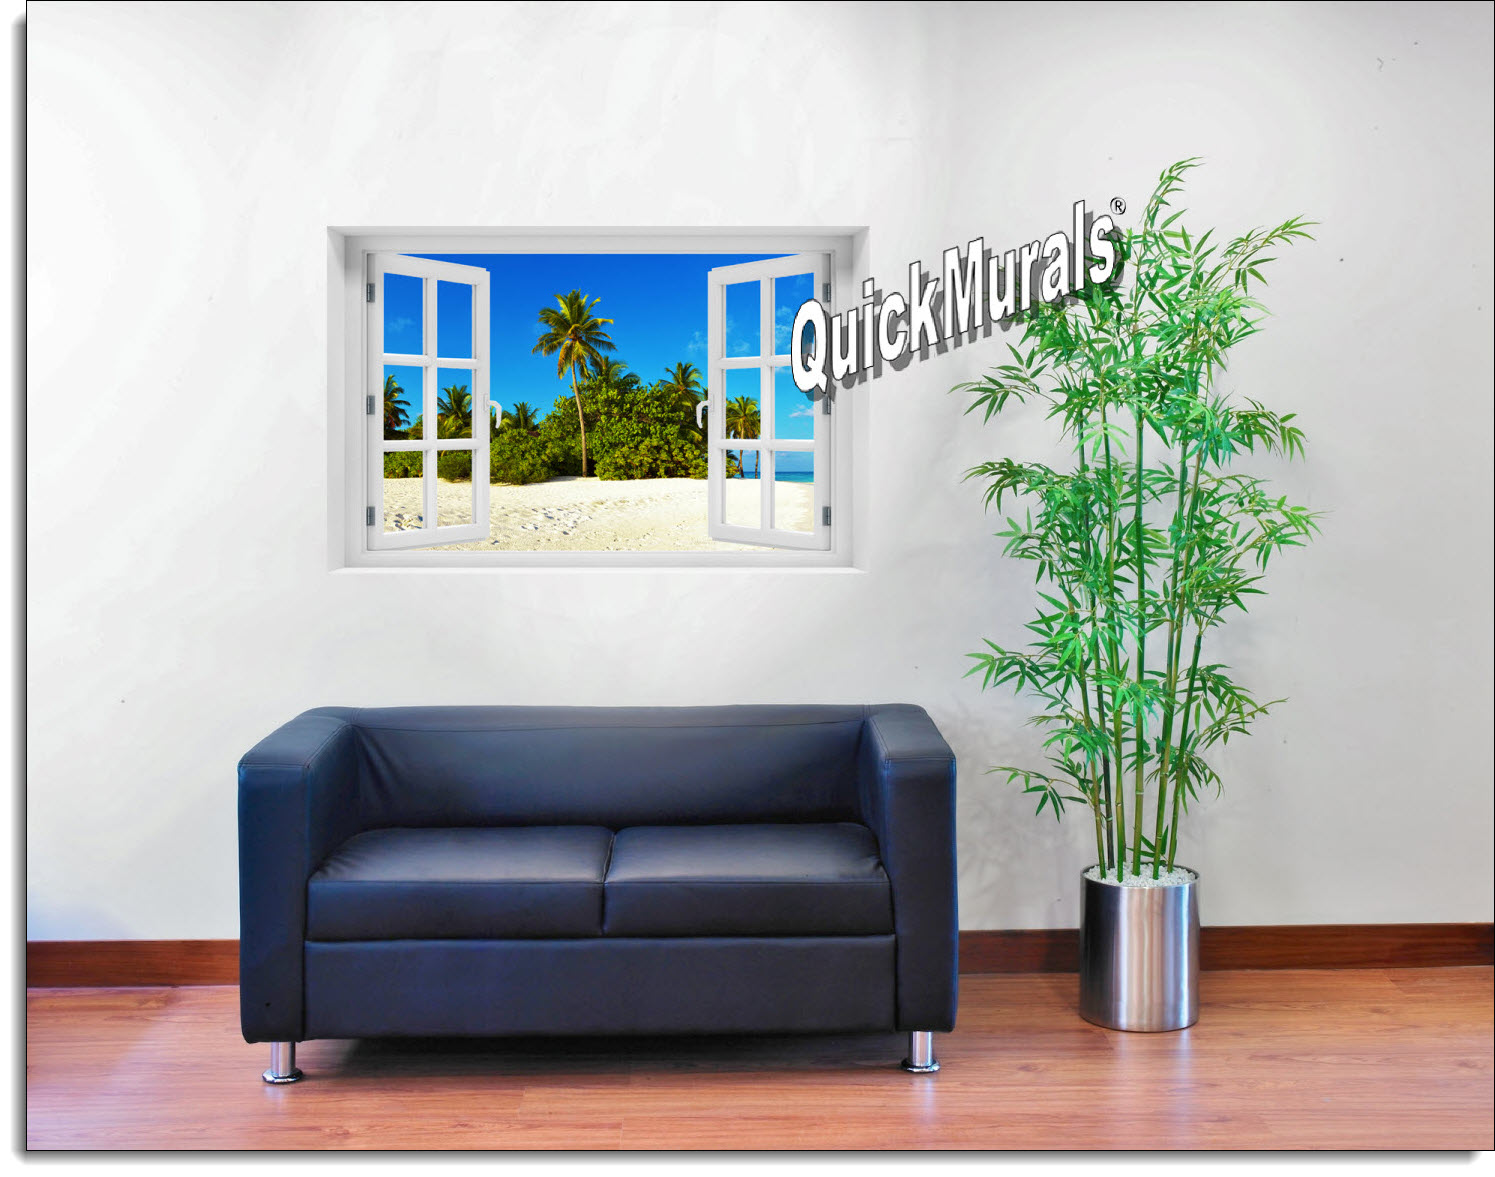 Curaco Island Window Mural